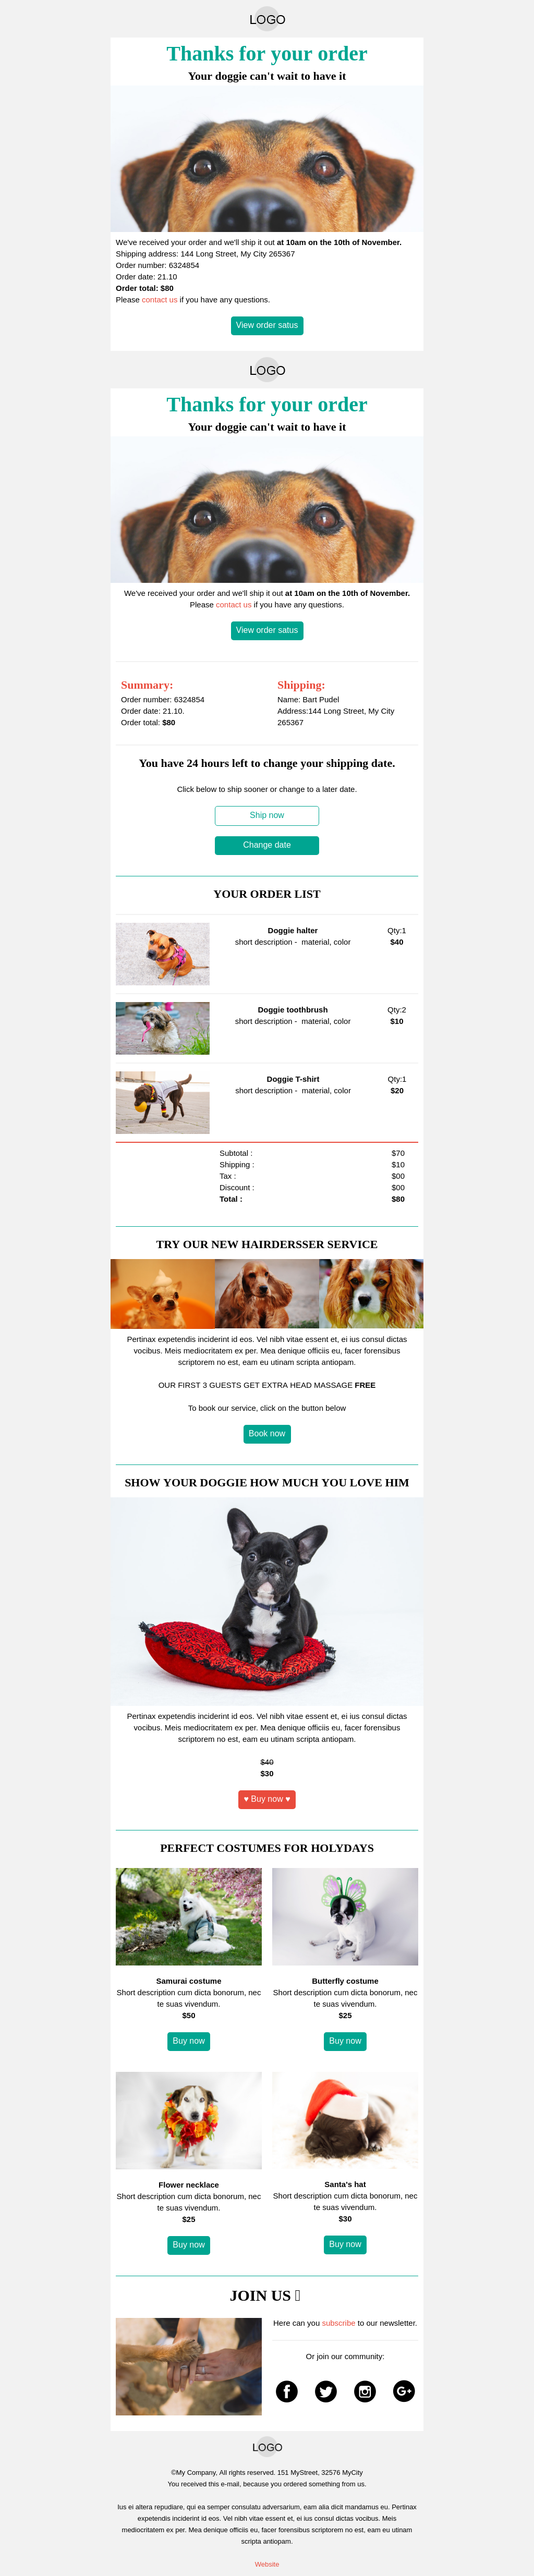 Doggy Heaven Mobile-friendly Order Confirmation Email Template